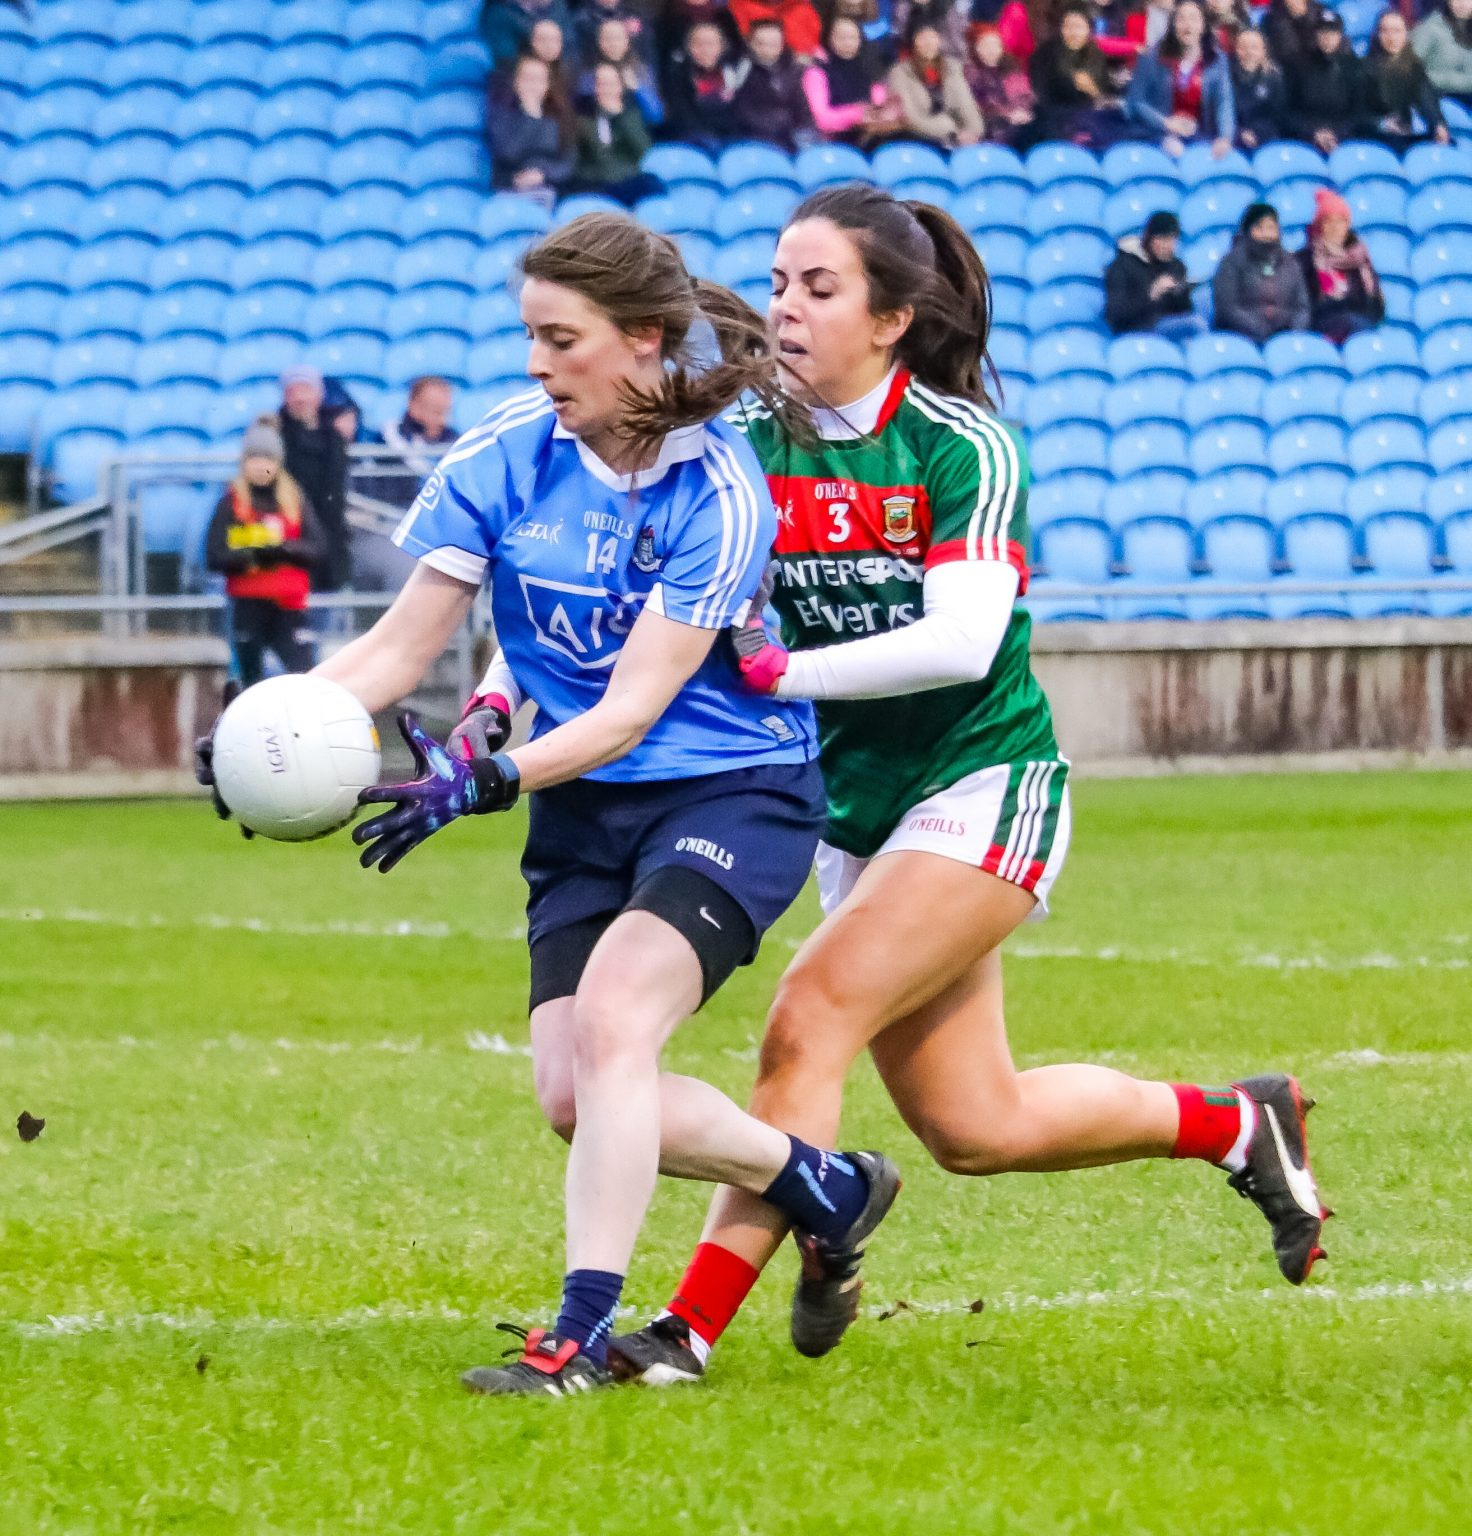 MATCH REPORT: OoNAGH WHYTE DOUBLE KEEPS DUBLIN LADIES 100% LEAGUE RECORD INTACT